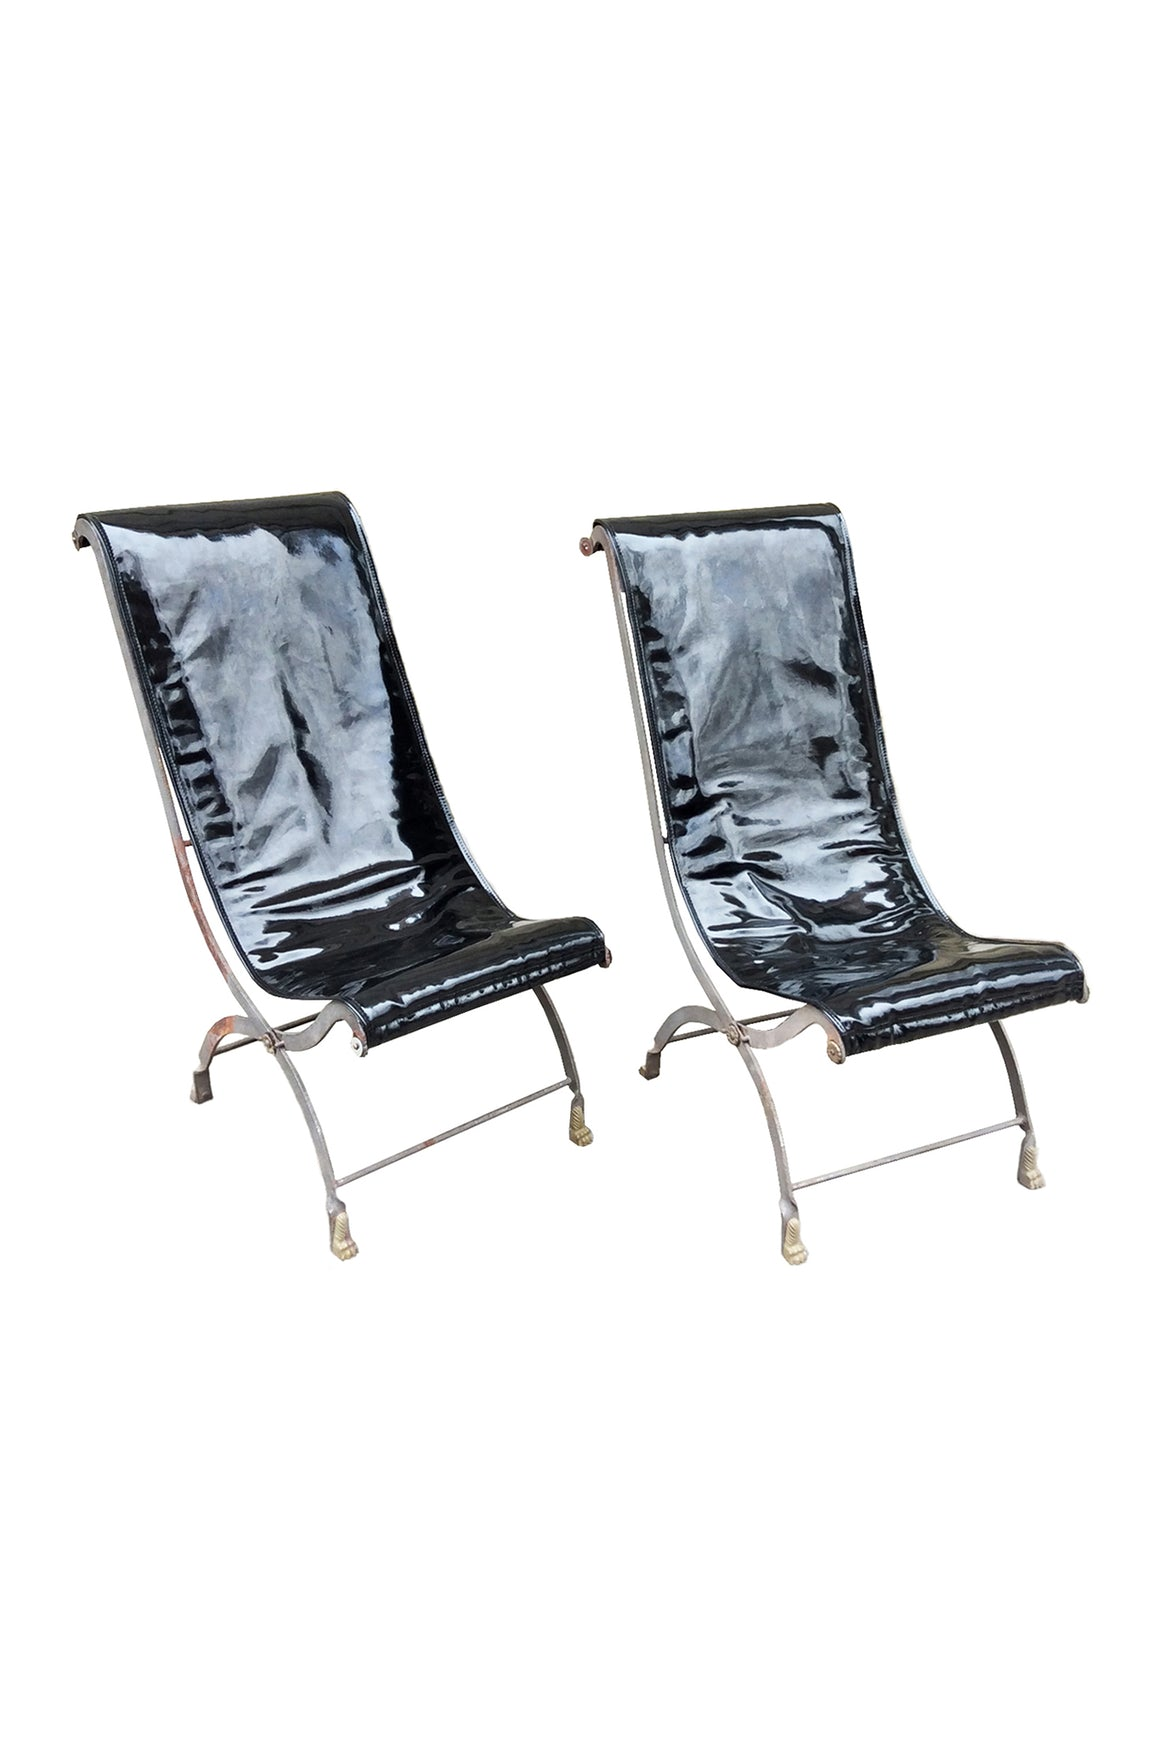 Pair of Early 20th Century Campaign Lounge Chairs in the Manner of Maison Jansen